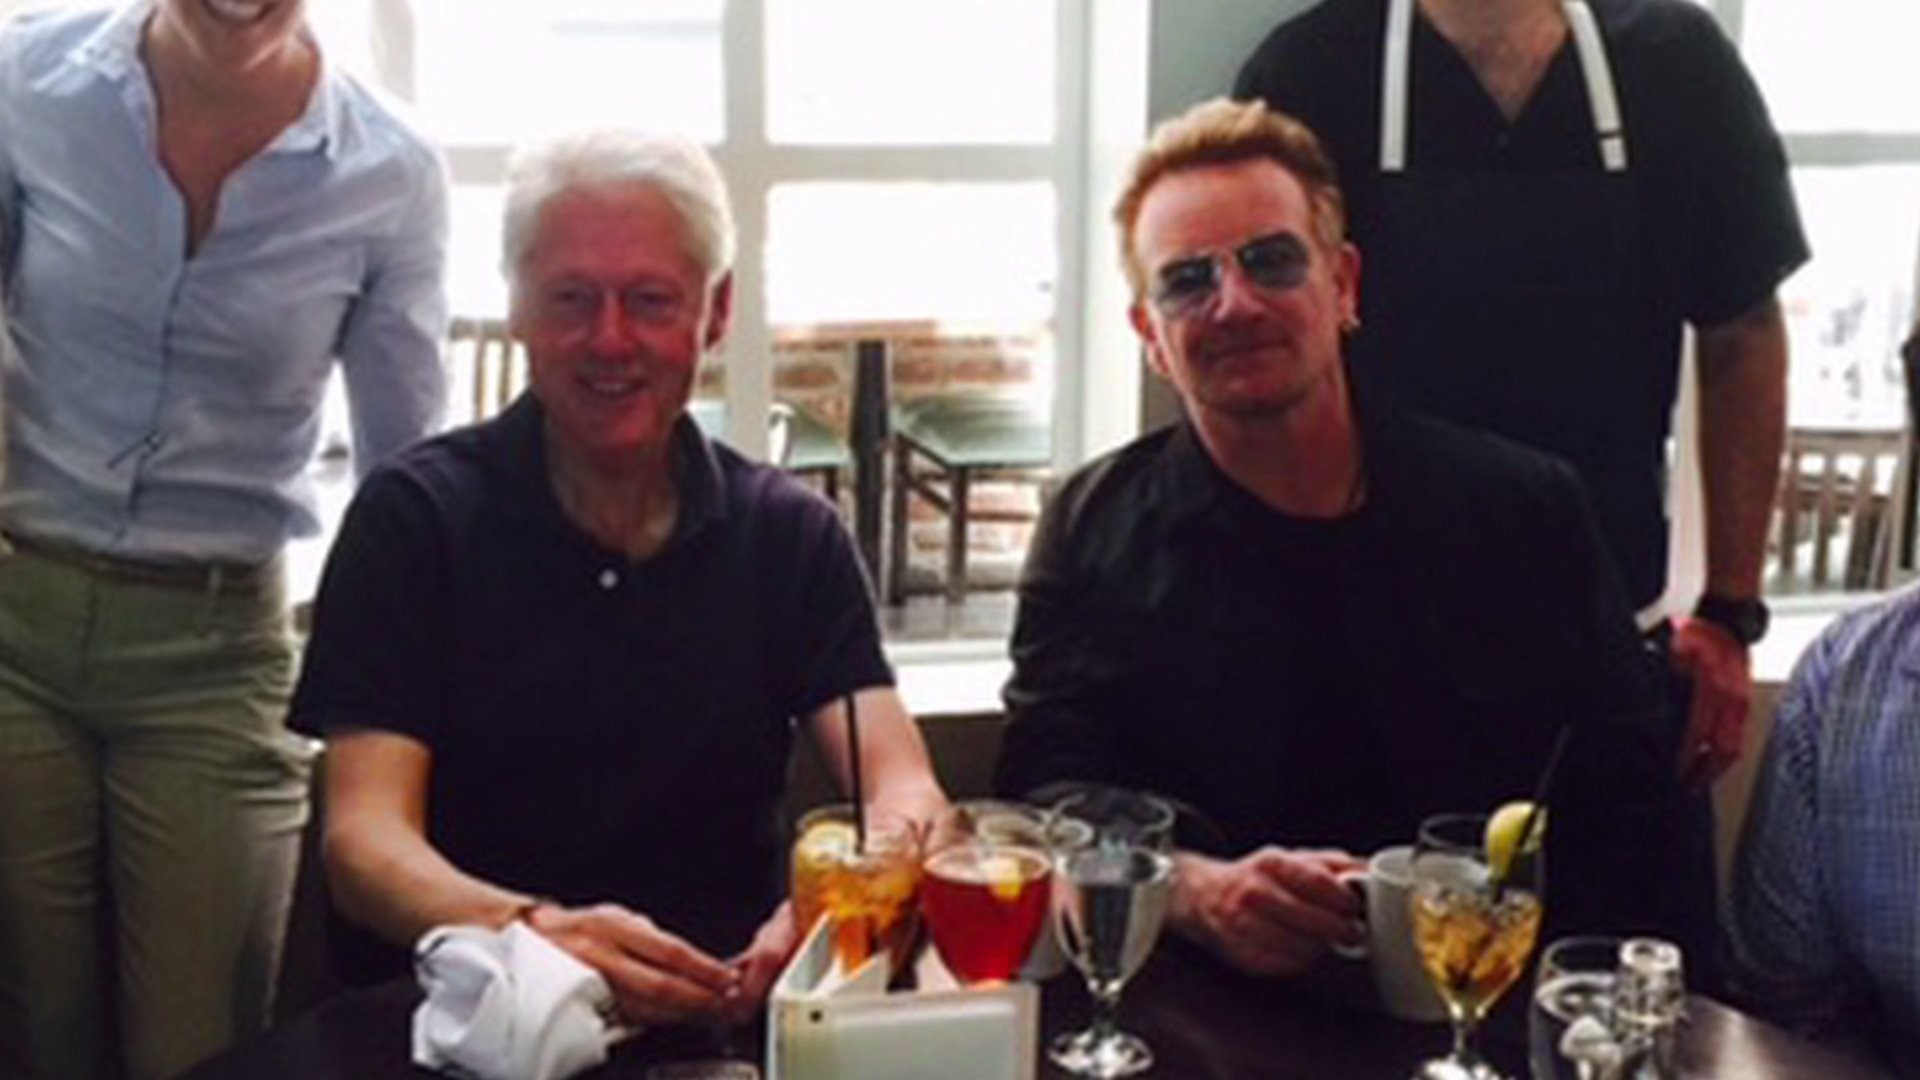 Bill Clinton and Bono have lunch in Denver